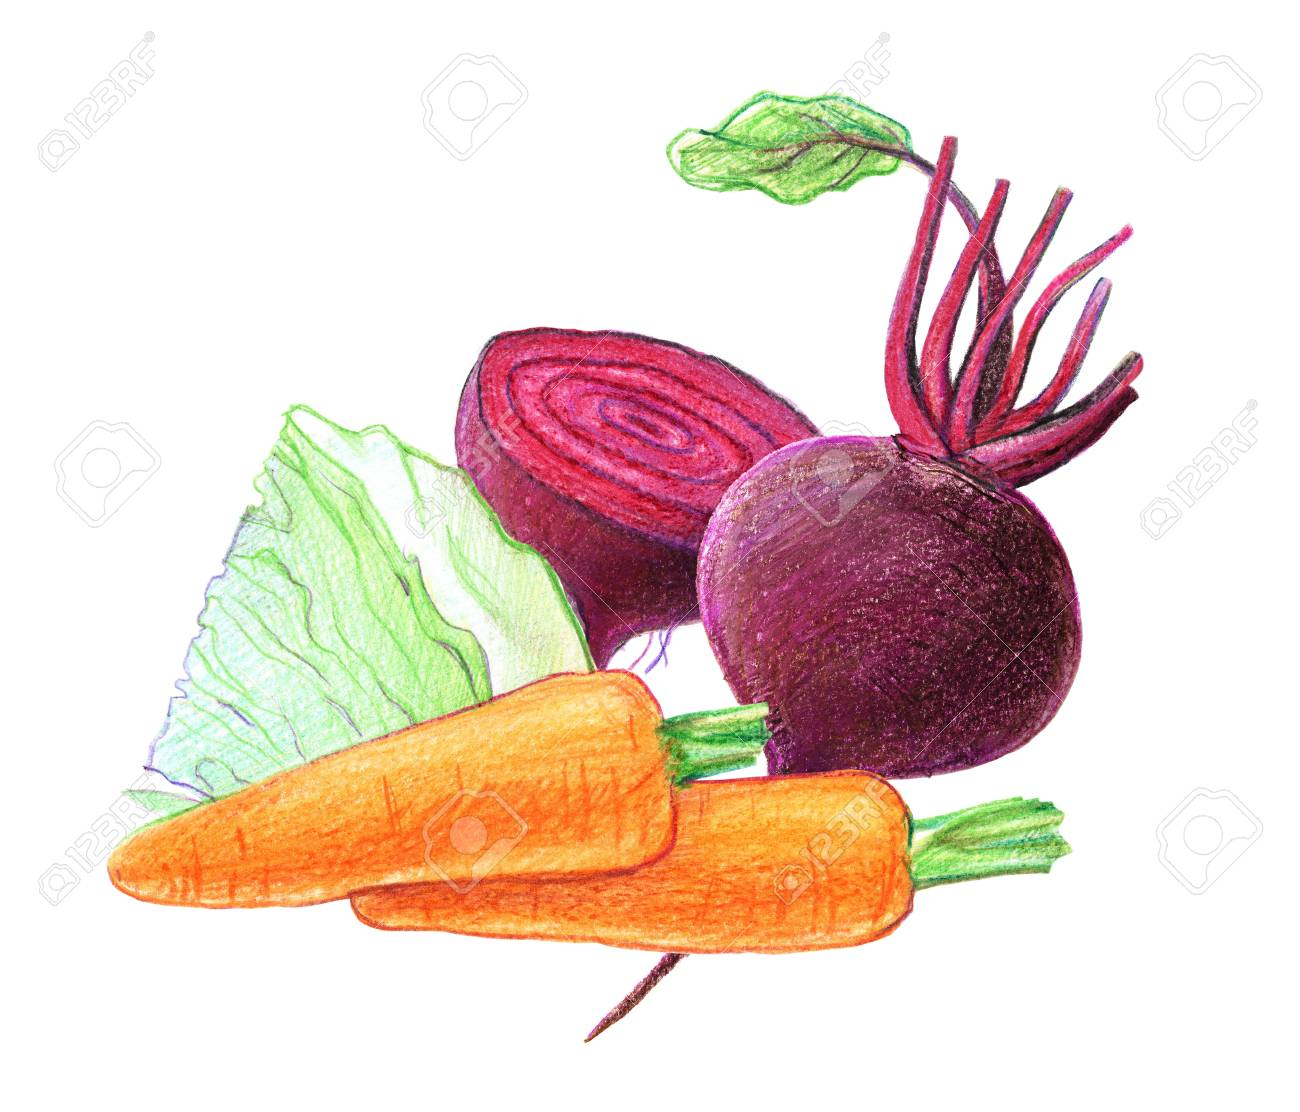 Vegetables And Root Vegetables Beets Cabbage Carrots Whole